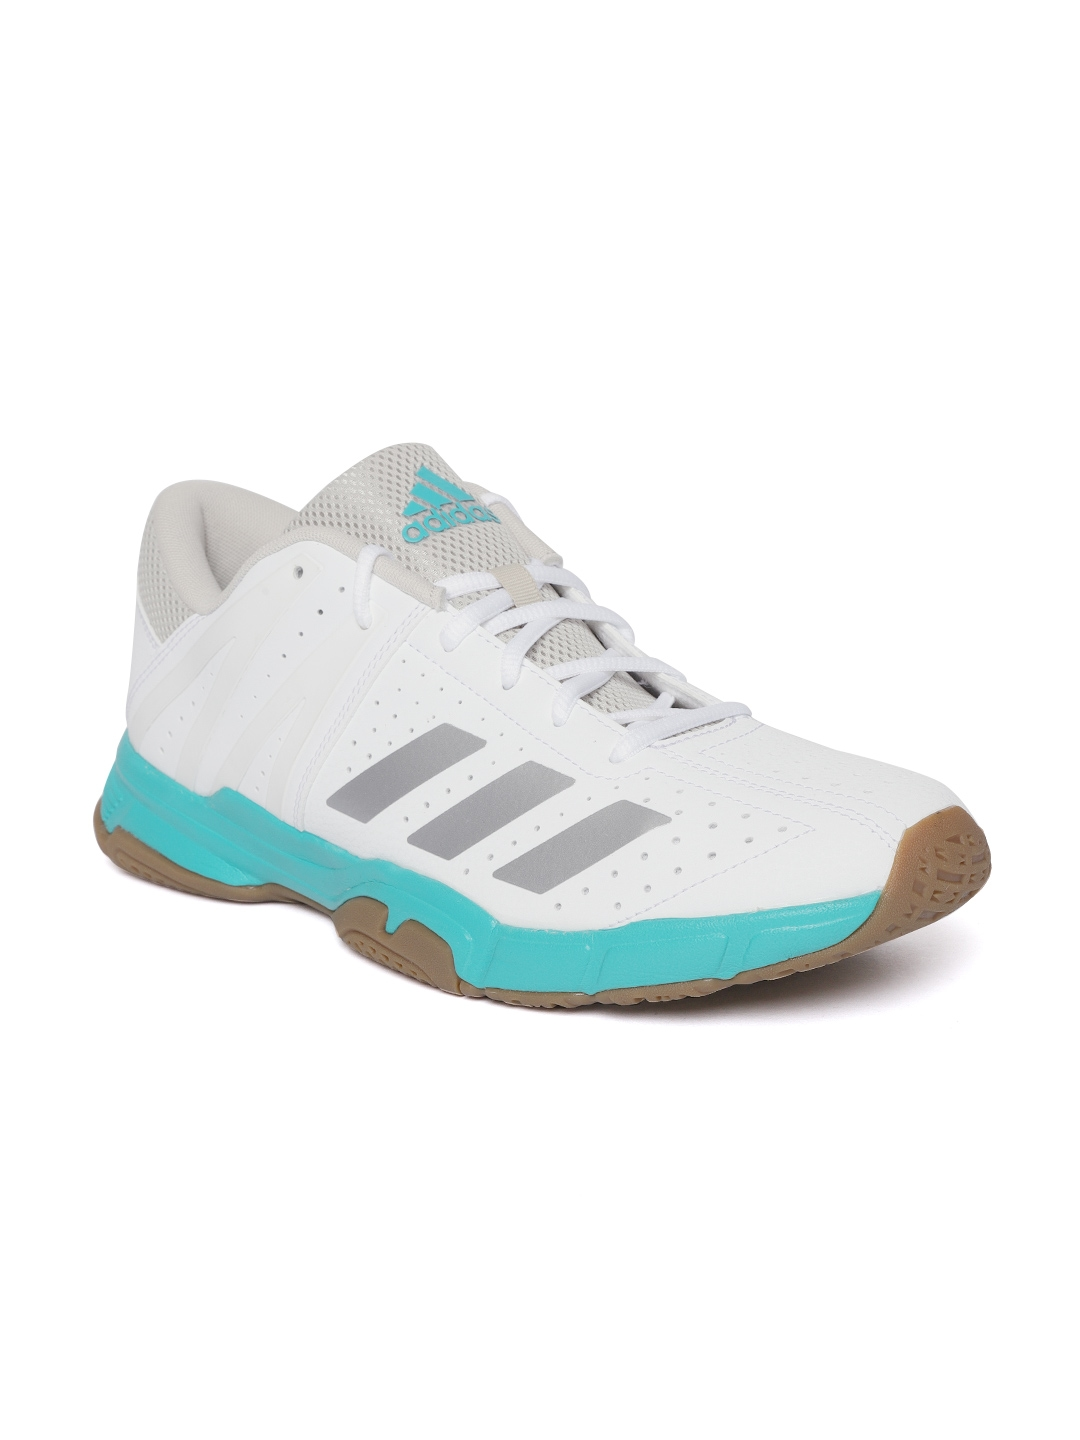 Buy ADIDAS Unisex White Badminton Shoes - Sports Shoes for Unisex ... 47cfd1af2